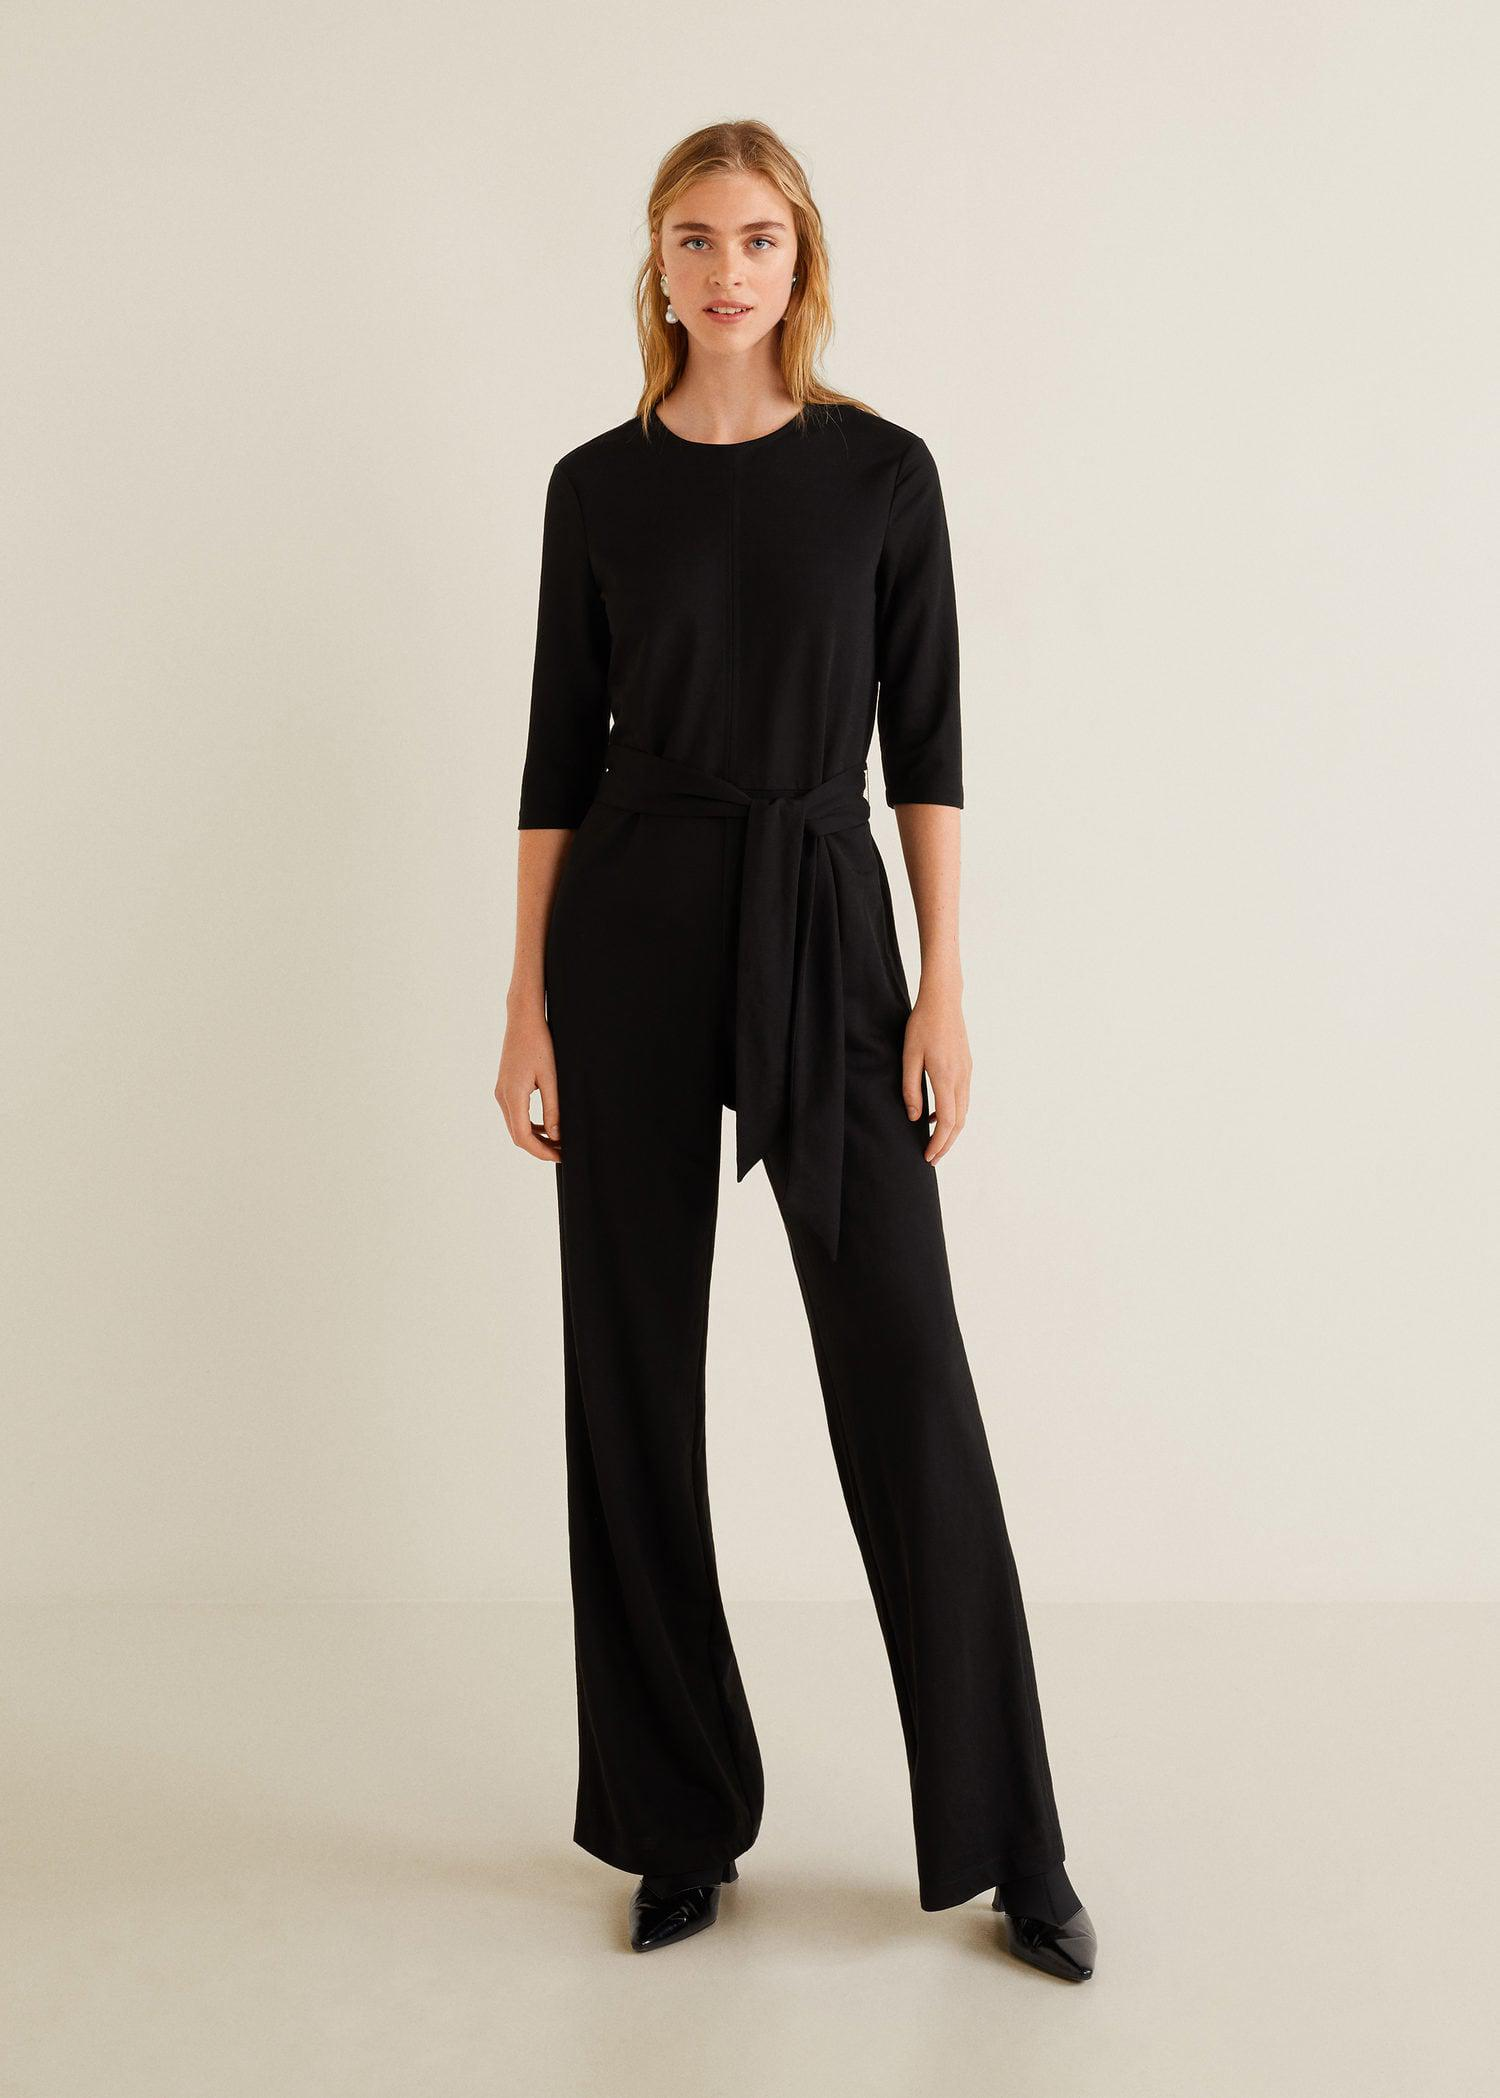 Lyst Mango Bow Long Jumpsuit In Black Longjohn Winter Wear Untuk Pria View Fullscreen